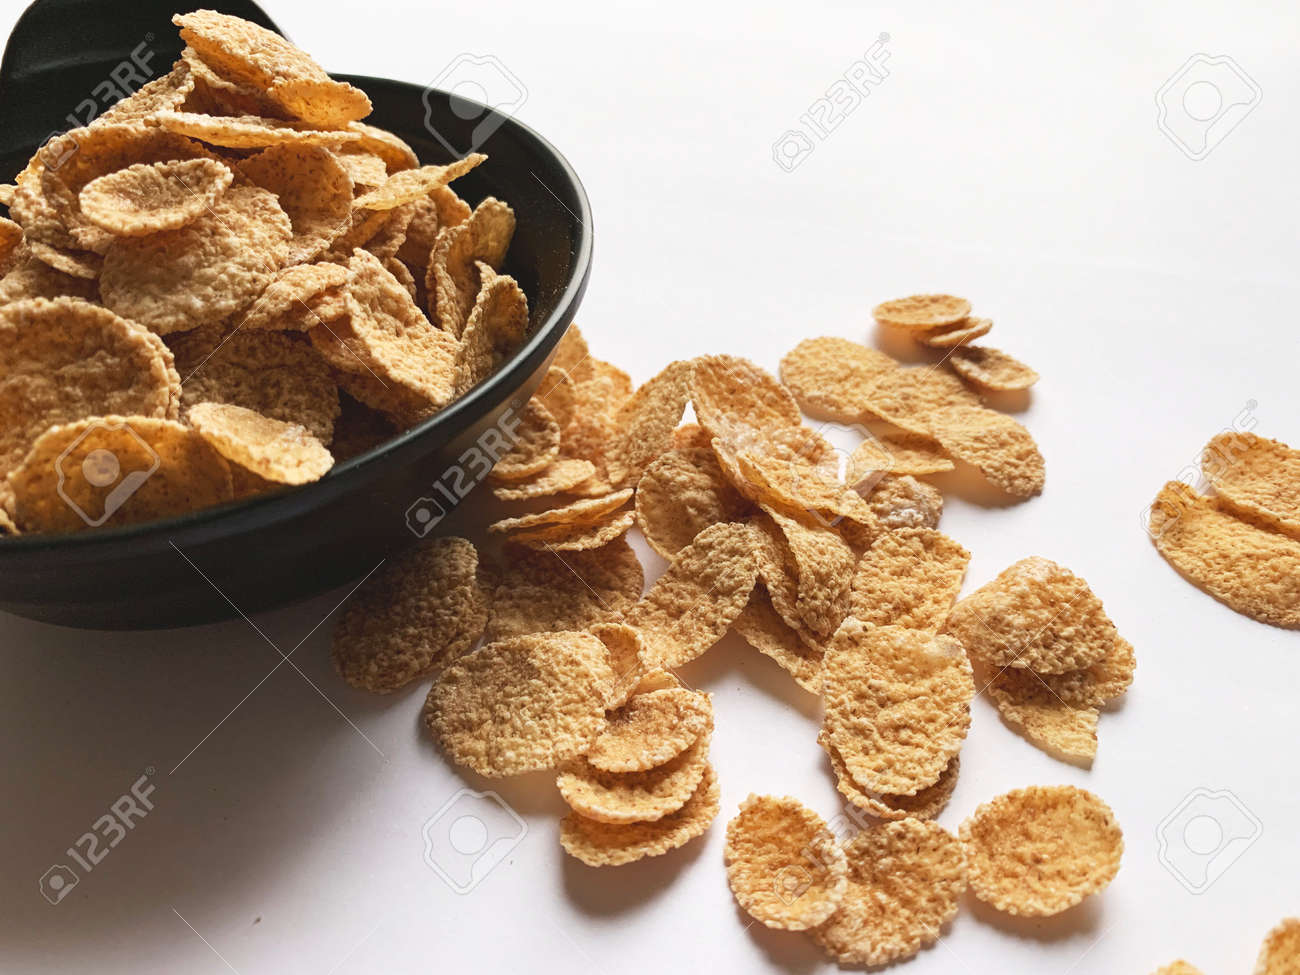 Multi-cereal flakes in a black cup with scattered flakes on white background. Closeup. - 169603129